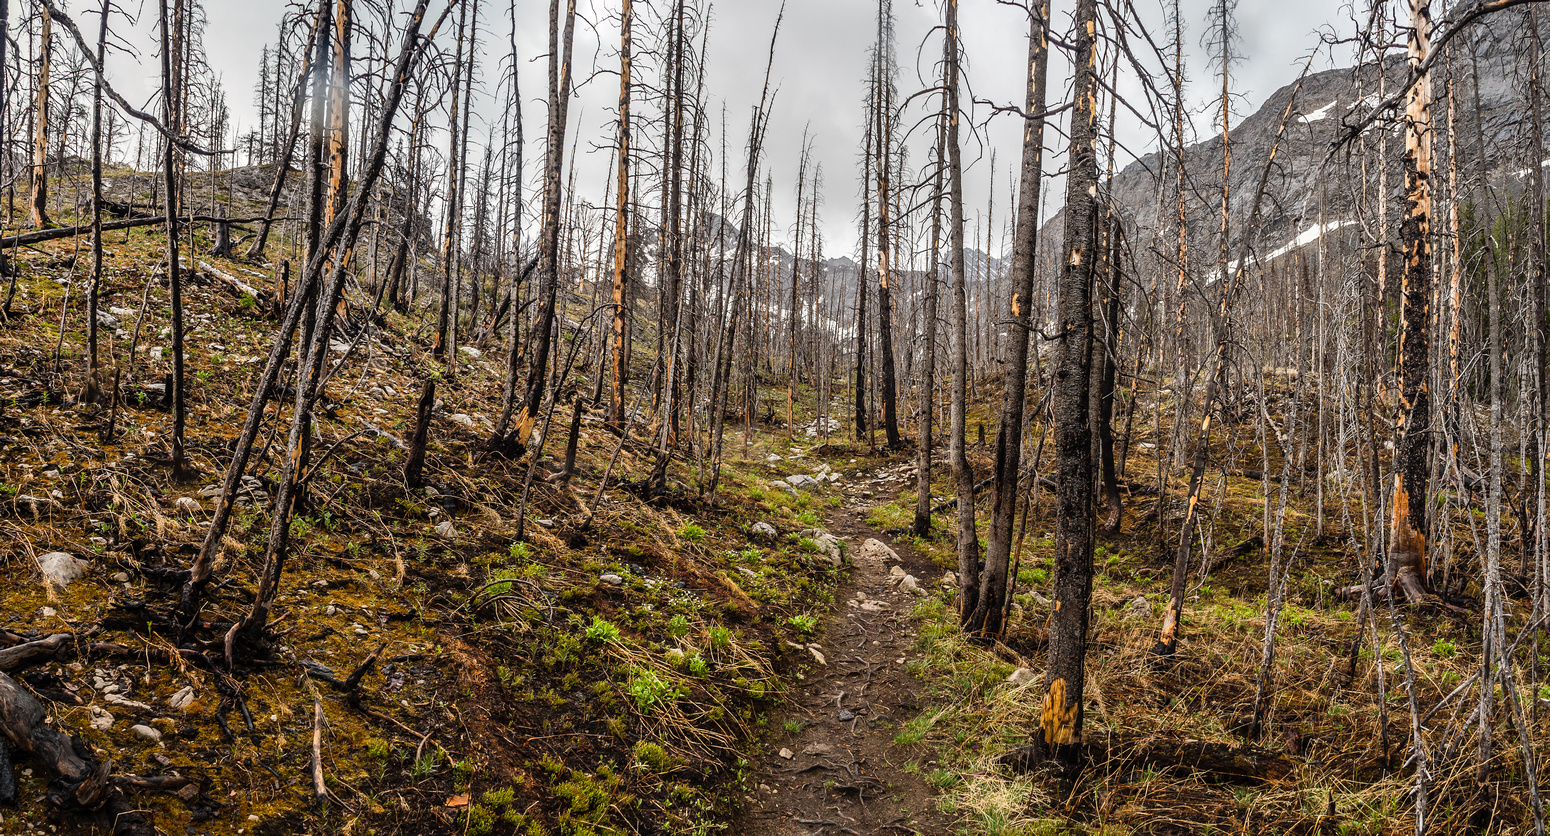 The South Buller Pass trail is lovely - especially the section through the recently burned out forest.